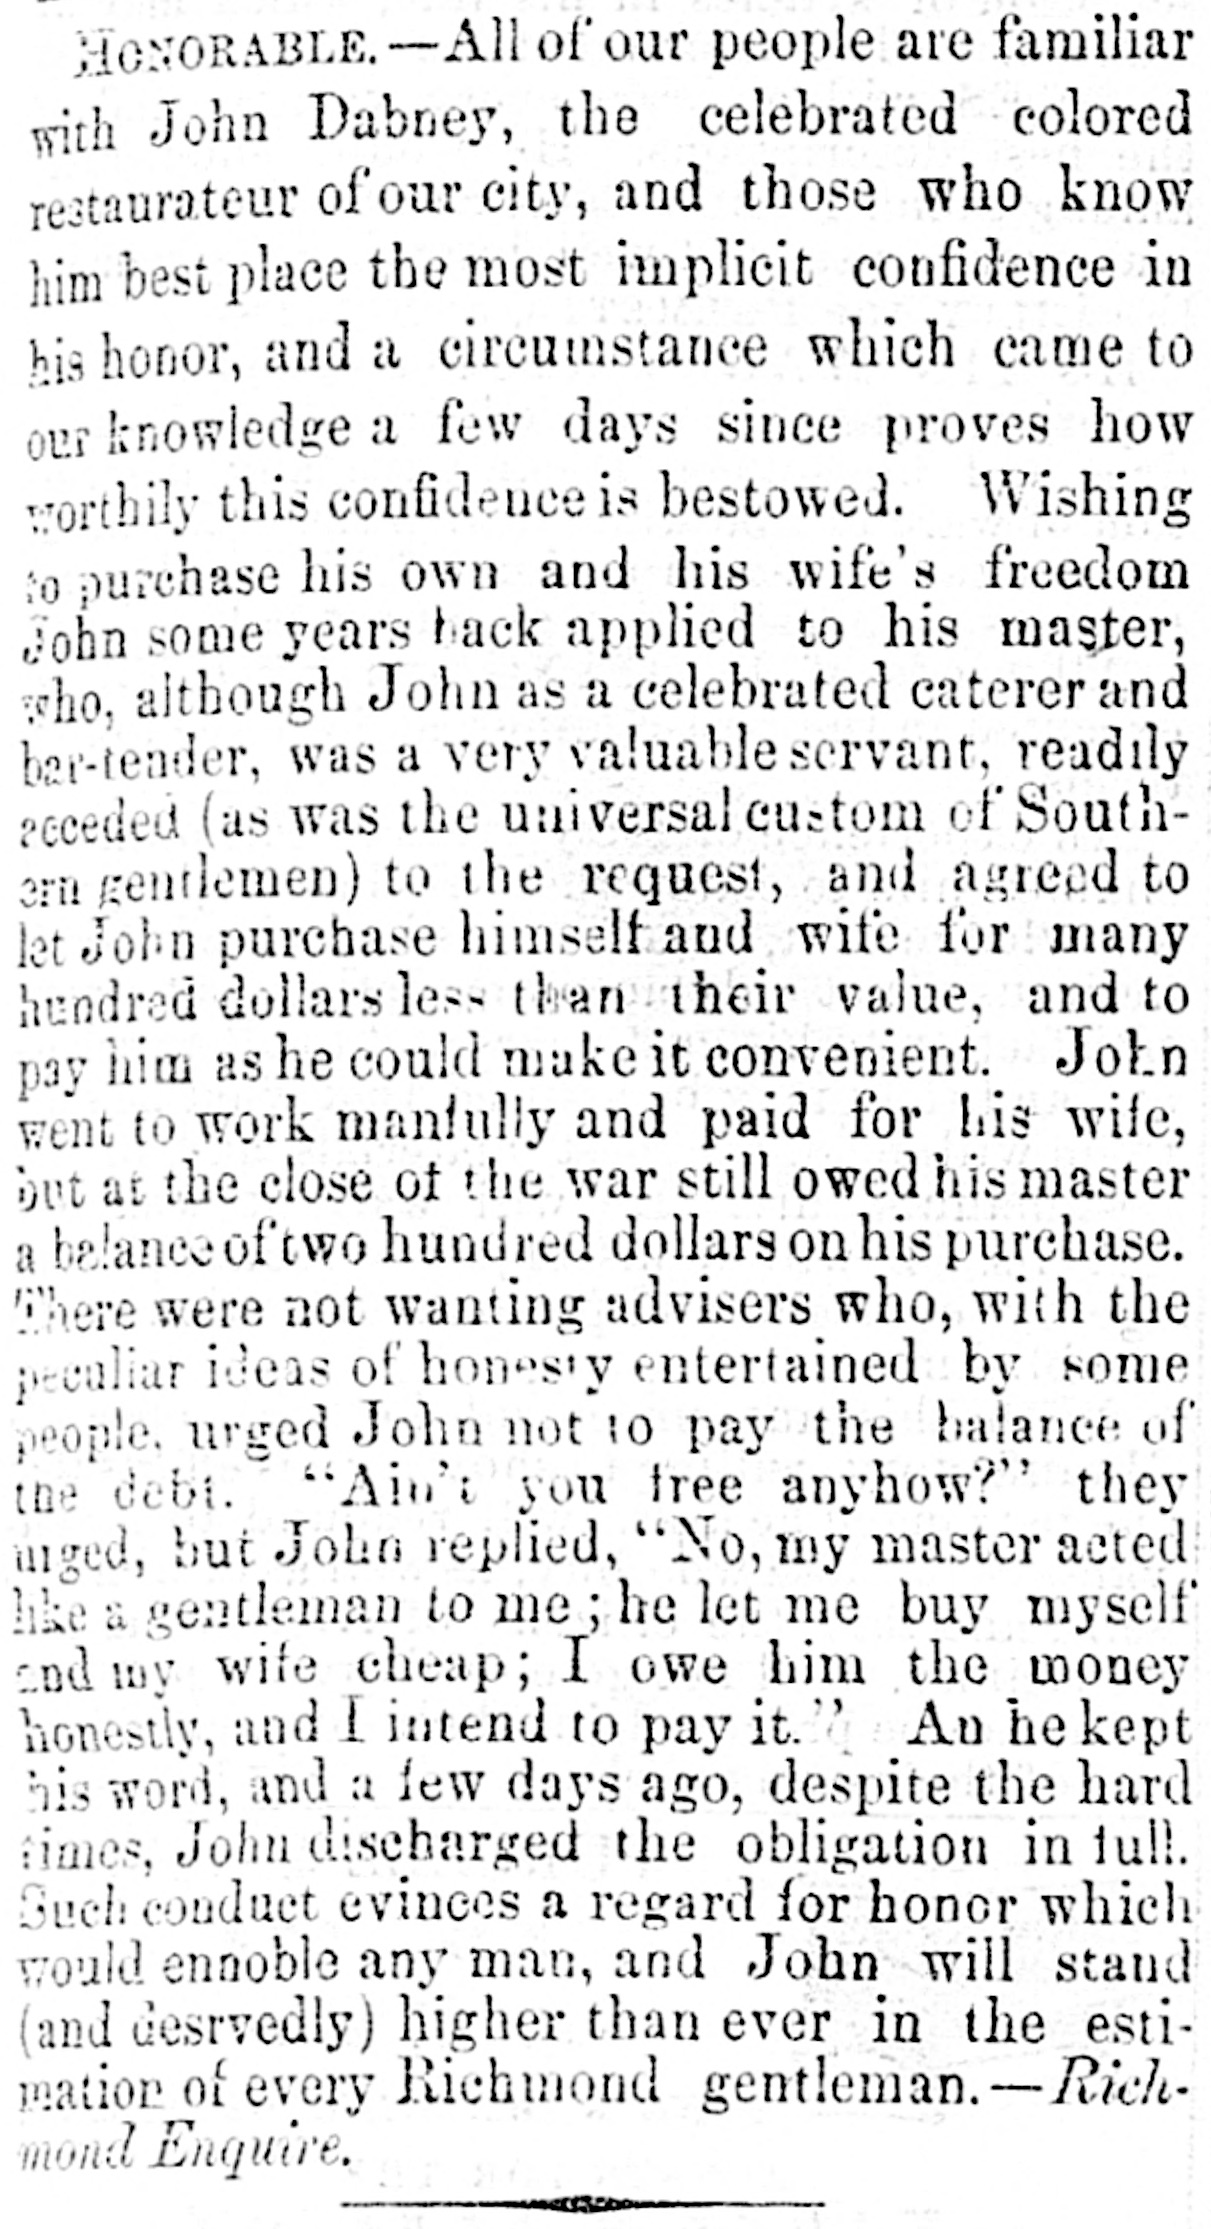 This detail image from the front page of the  Alexandria Gazette  reflects the excitement generated by Dabney's decision to remit the remainder of his wartime freedom payments to Cora Williamson DeJarnette.  Re-printed from the  Richmond Enquirer , a paper whose records from this period have been lost, the story led the paper on September 26, 1866, situated at the top left so that readers would see it first.   (Chronicling America collection of the Library of Congress)    Click the image to enlarge.